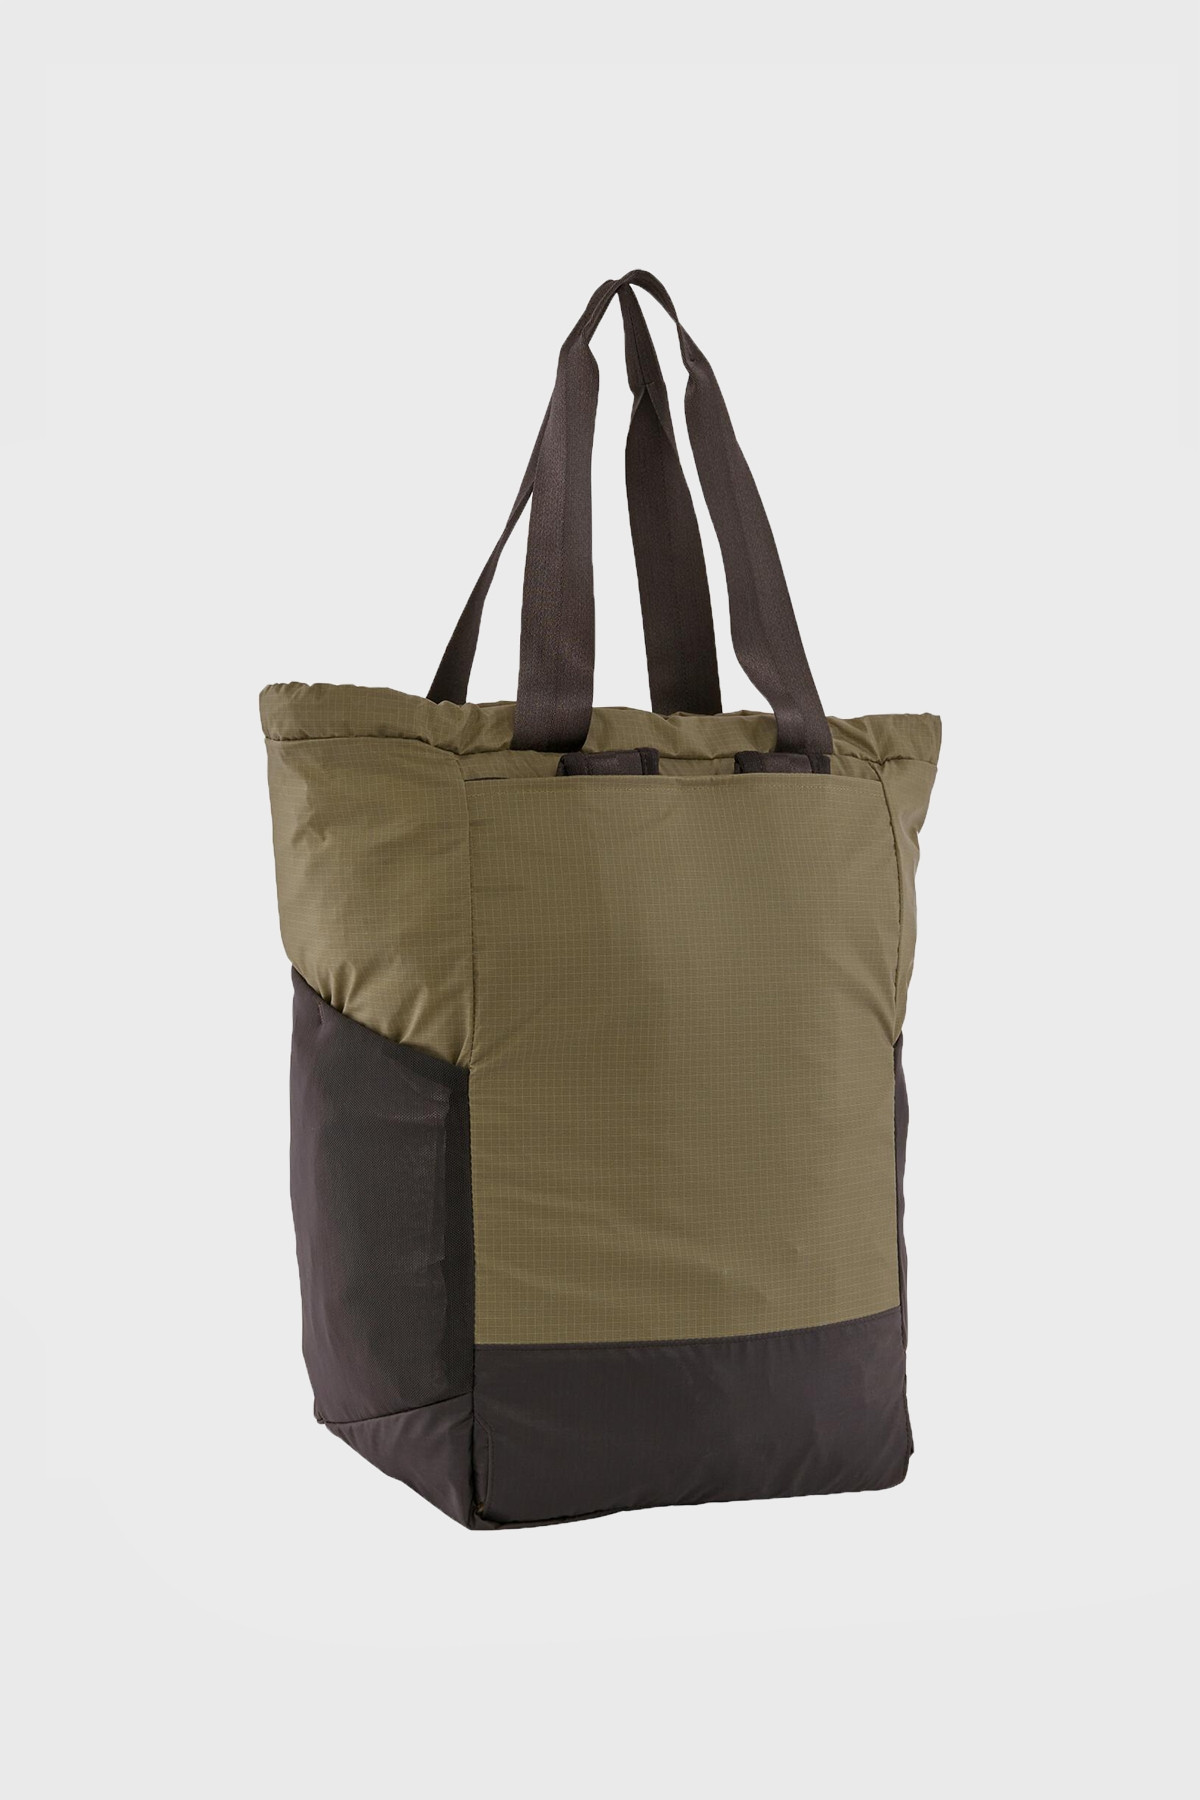 Patagonia - Ultralight Black Hole® Tote Pack 27L - Sage Kaki